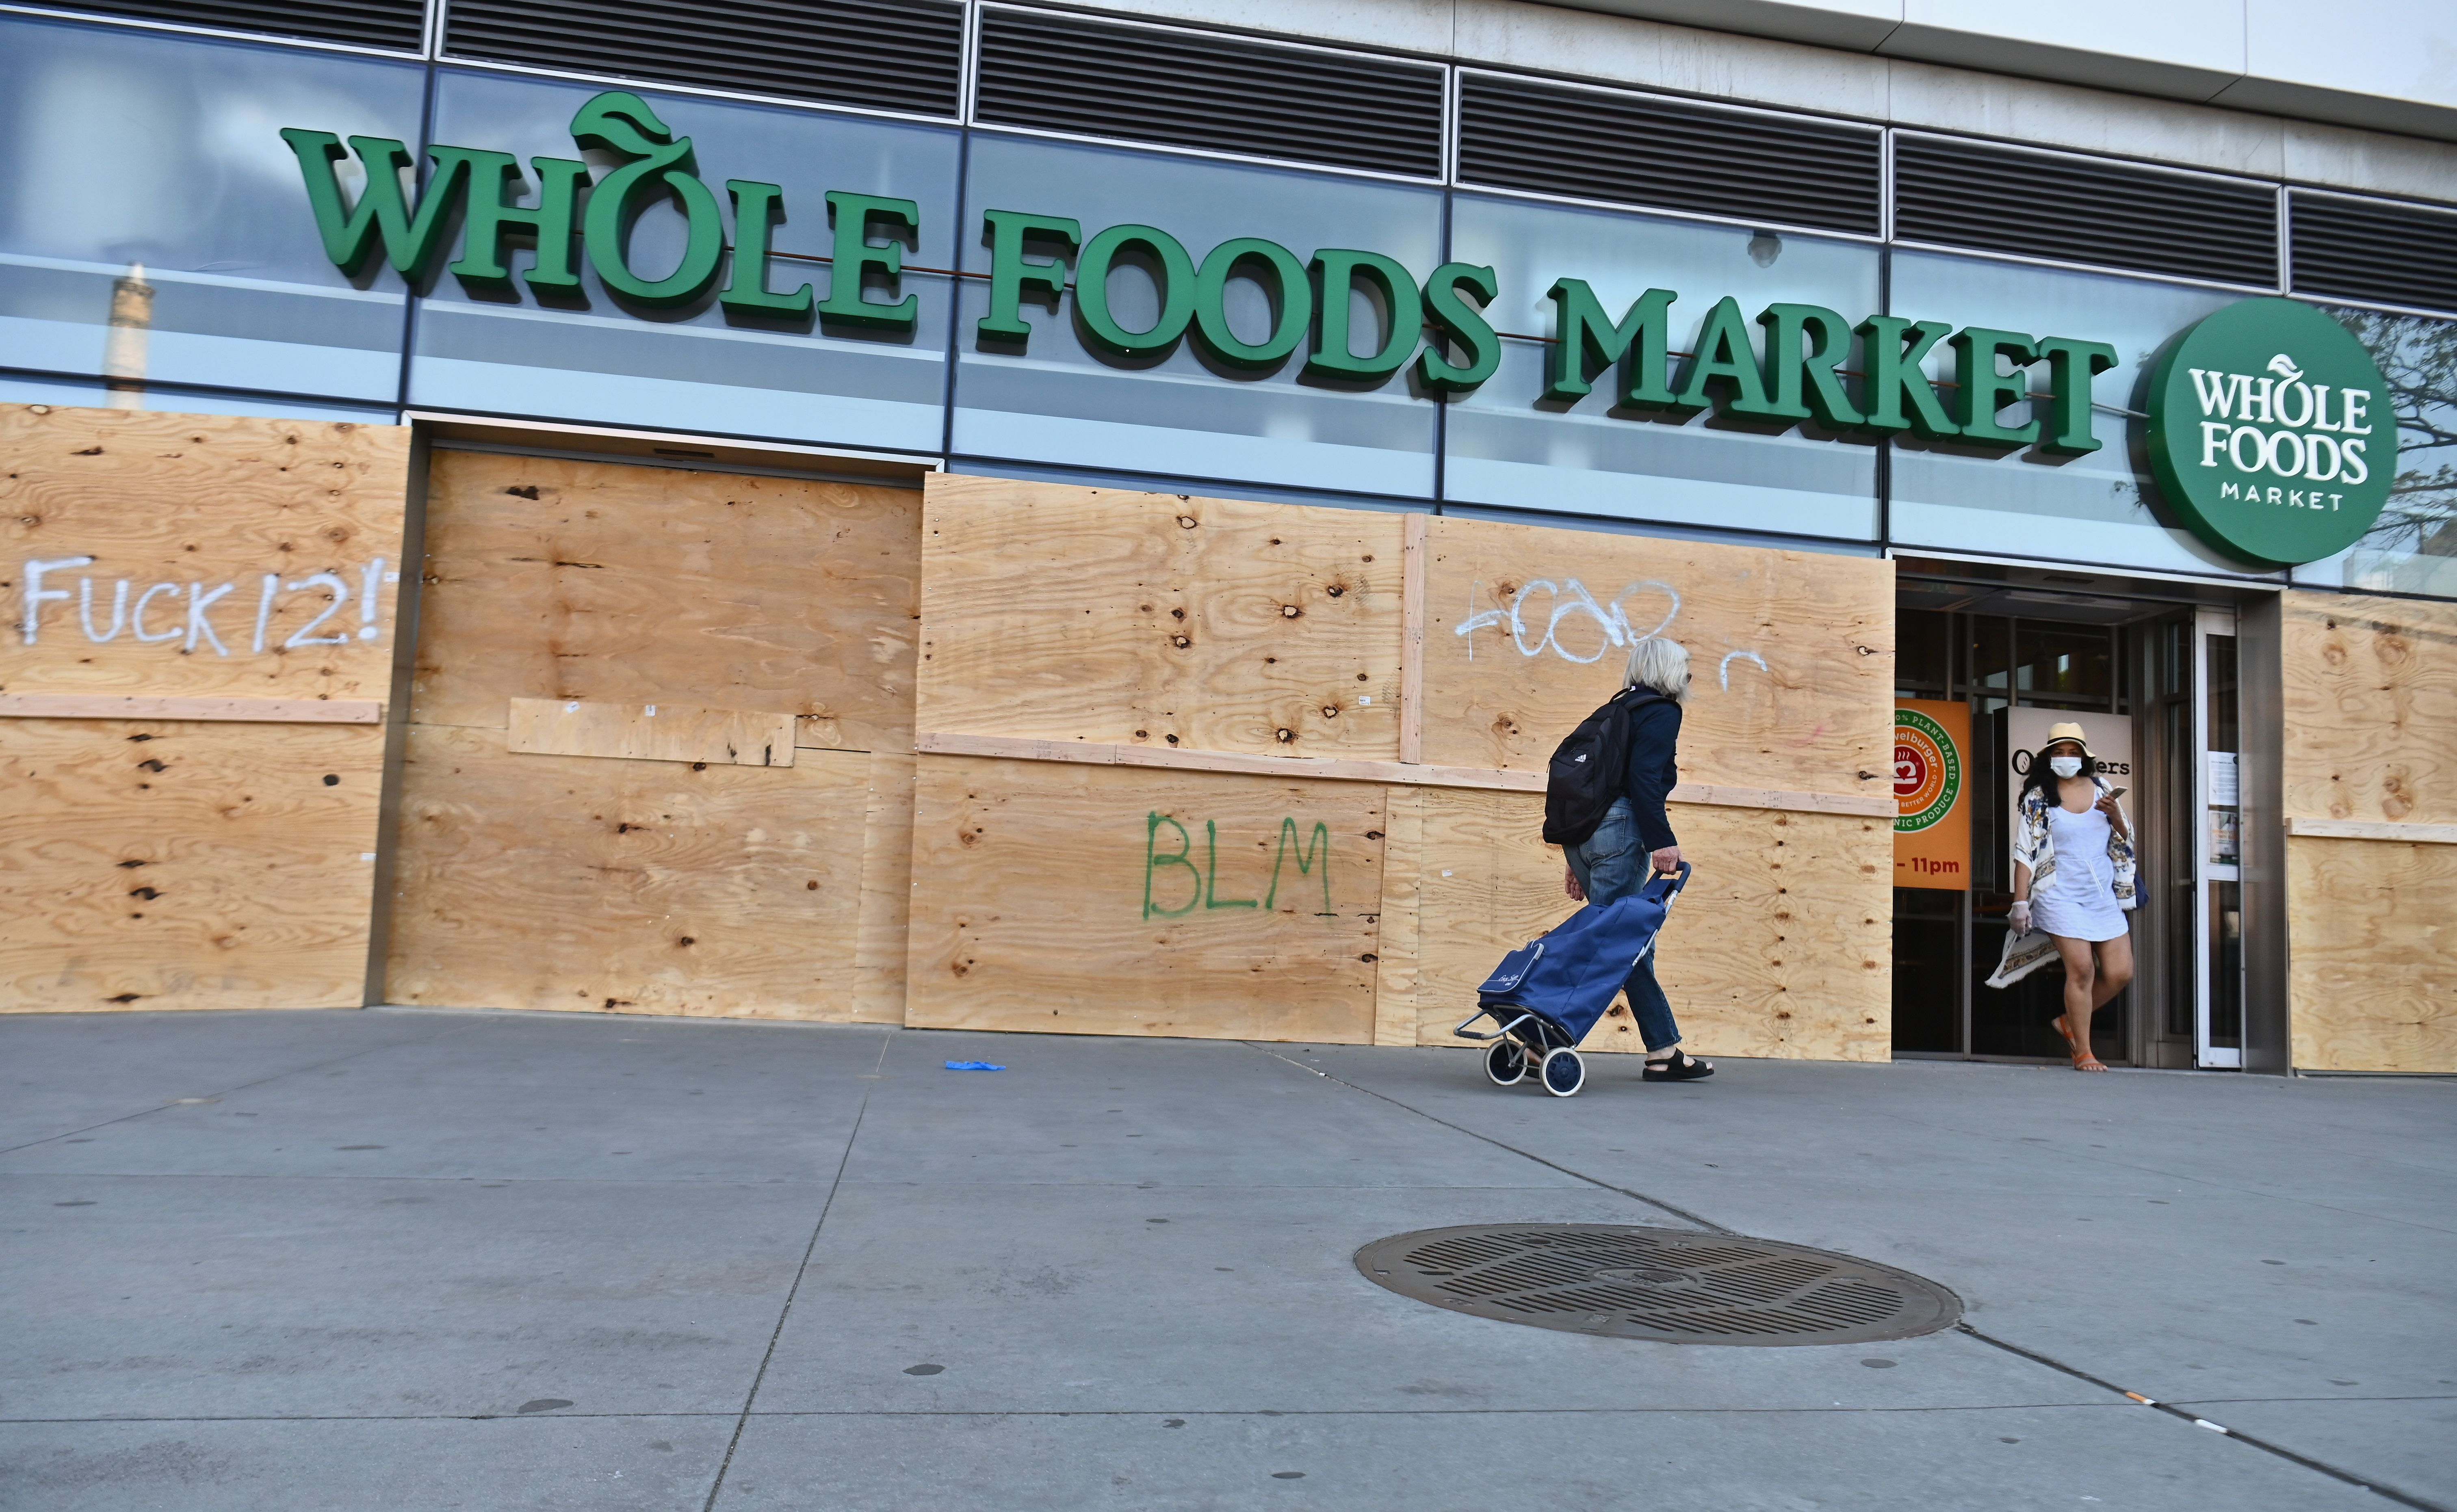 People go shopping at a Brooklyn, New York Whole Foods Market store, which is boarded up on June 1 after a night of protest over the death of George Floyd. (Angela Weiss/AFP via Getty Images)